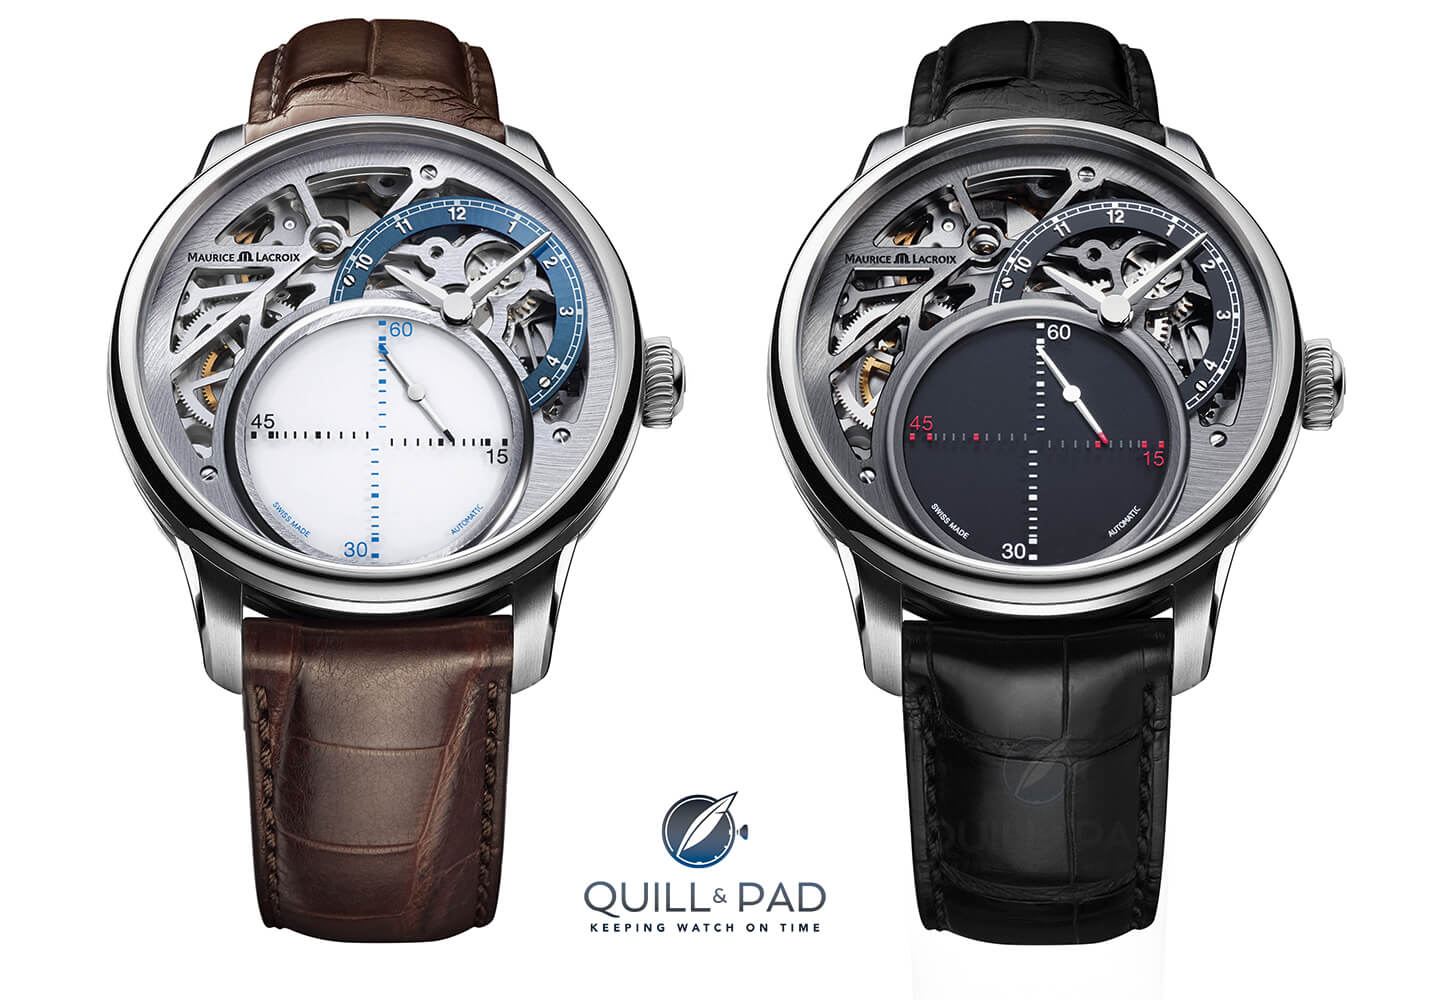 Maurice Lacroix Masterpiece Mysterious Seconds available in white and black dial versions